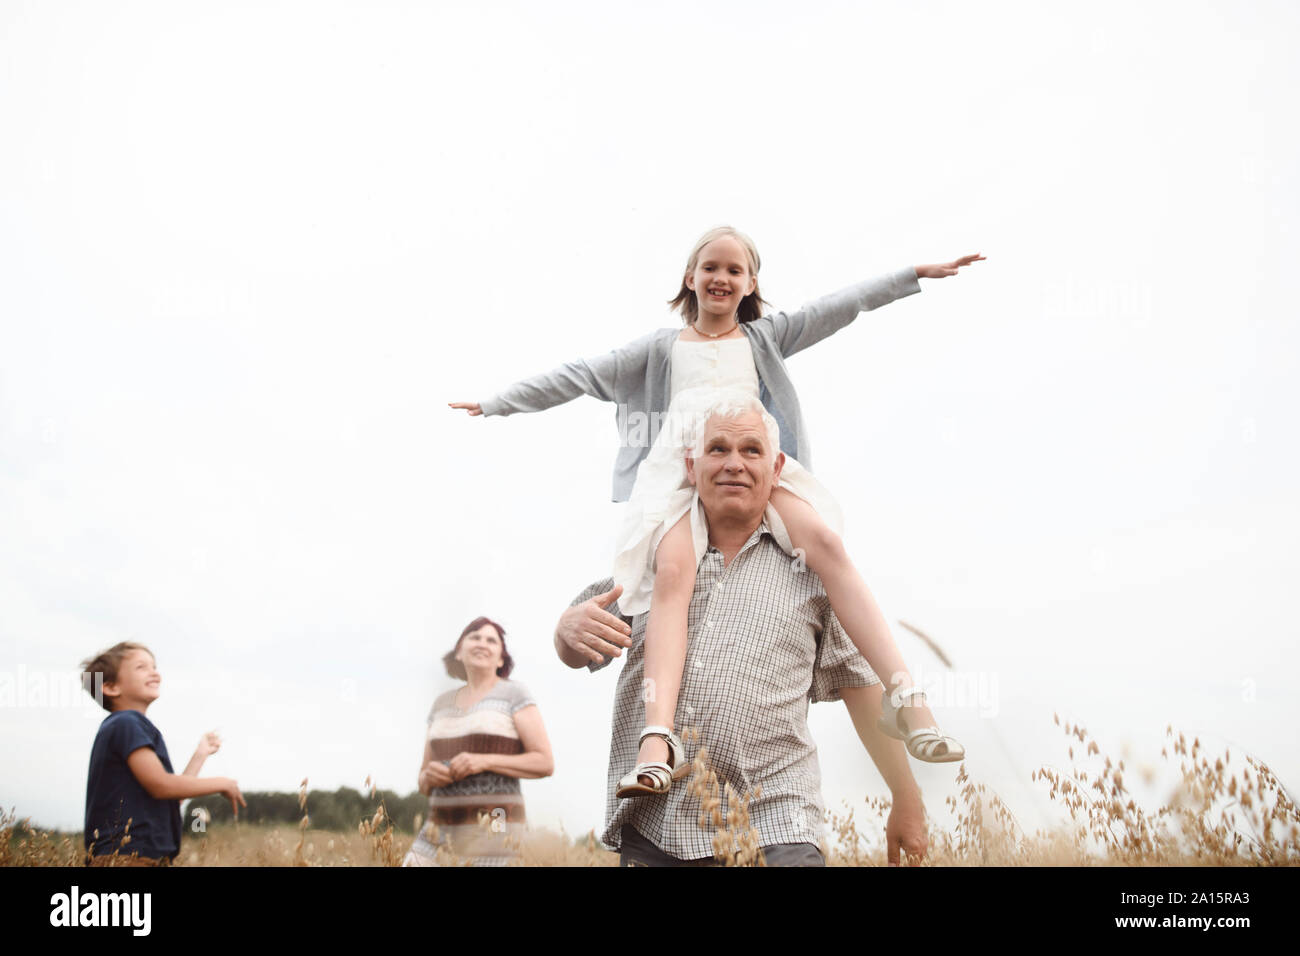 Happy girl sitting on her grandfather's shoulders in nature with brother and grandmother in the background Stock Photo